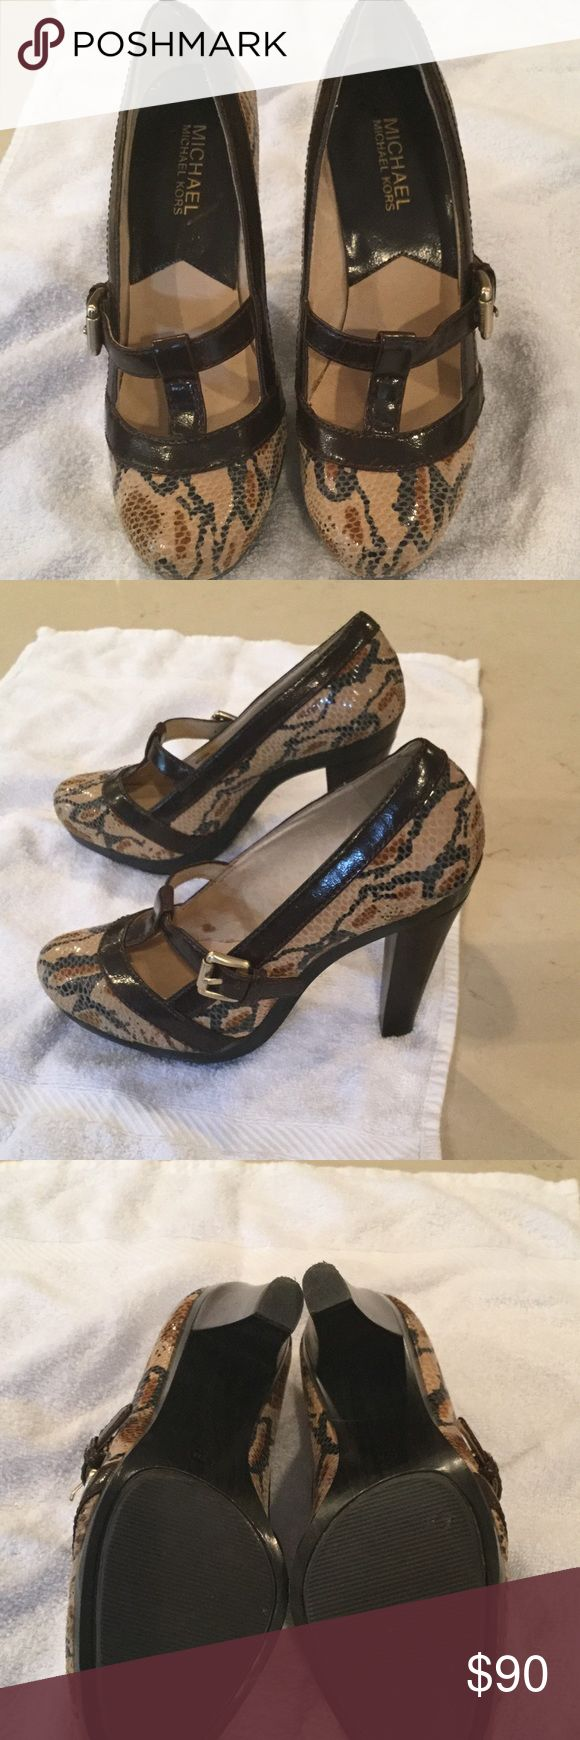 Michael Kors Animal Print High Heeled Pumps Really cute high heeled stylish animal print MaryJanes , shiny and gorgeous. Barely worn. Great shoes! MICHAEL Michael Kors Shoes Heels